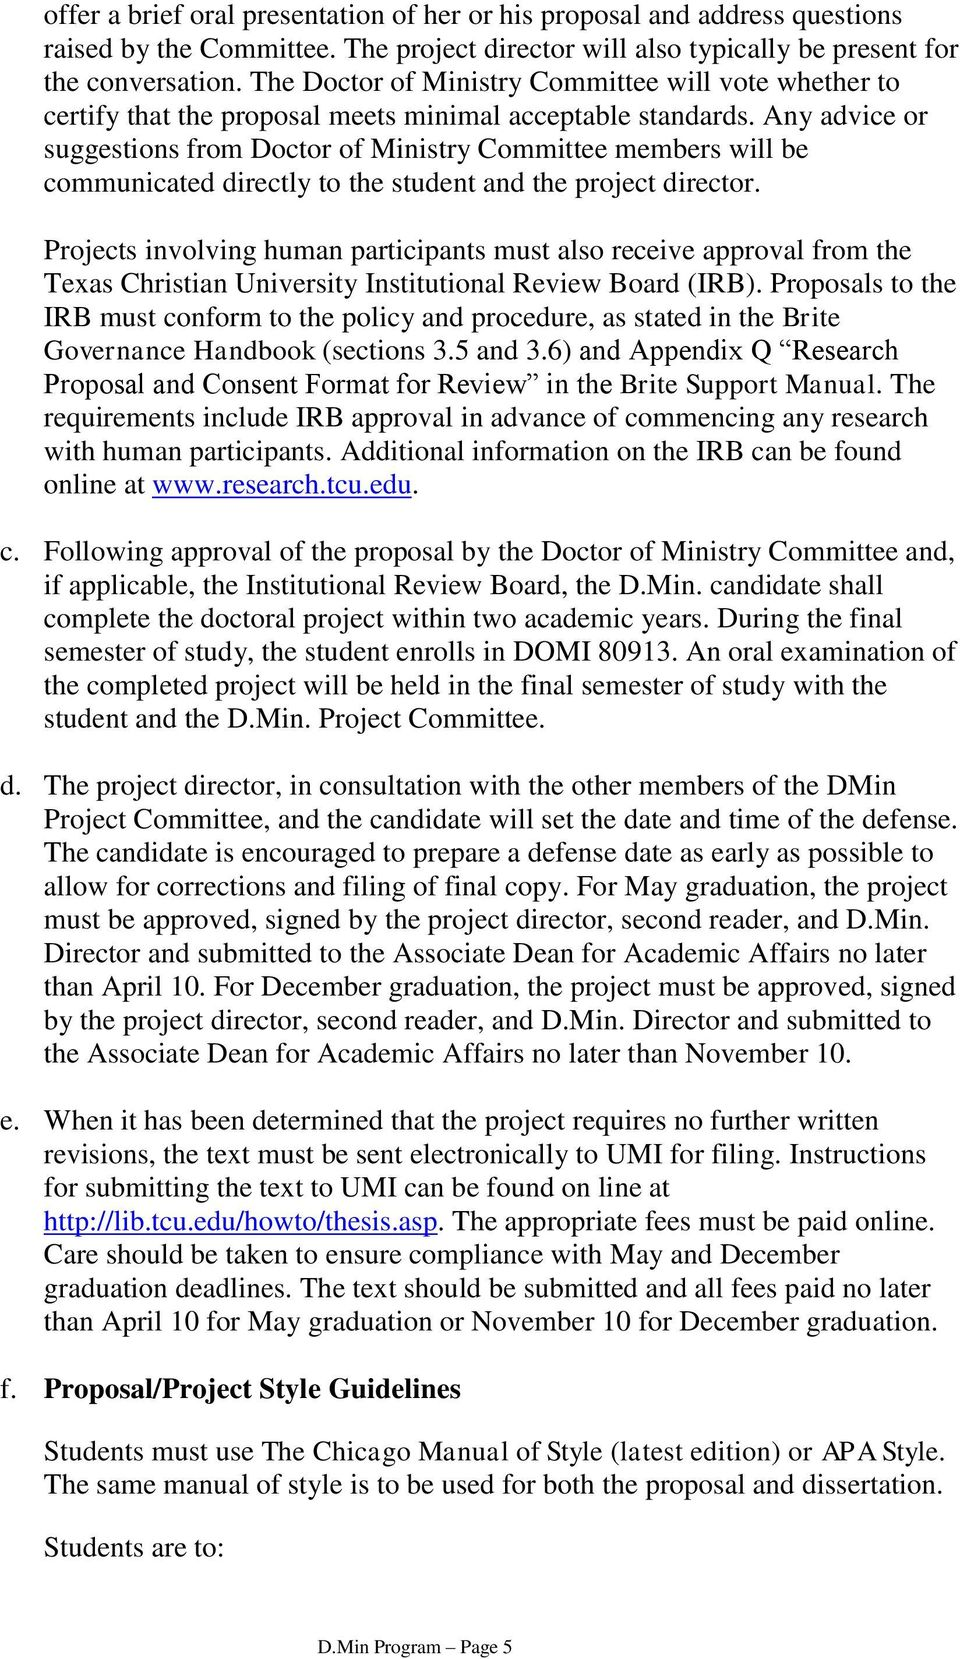 Any advice or suggestions from Doctor of Ministry Committee members will be communicated directly to the student and the project director.